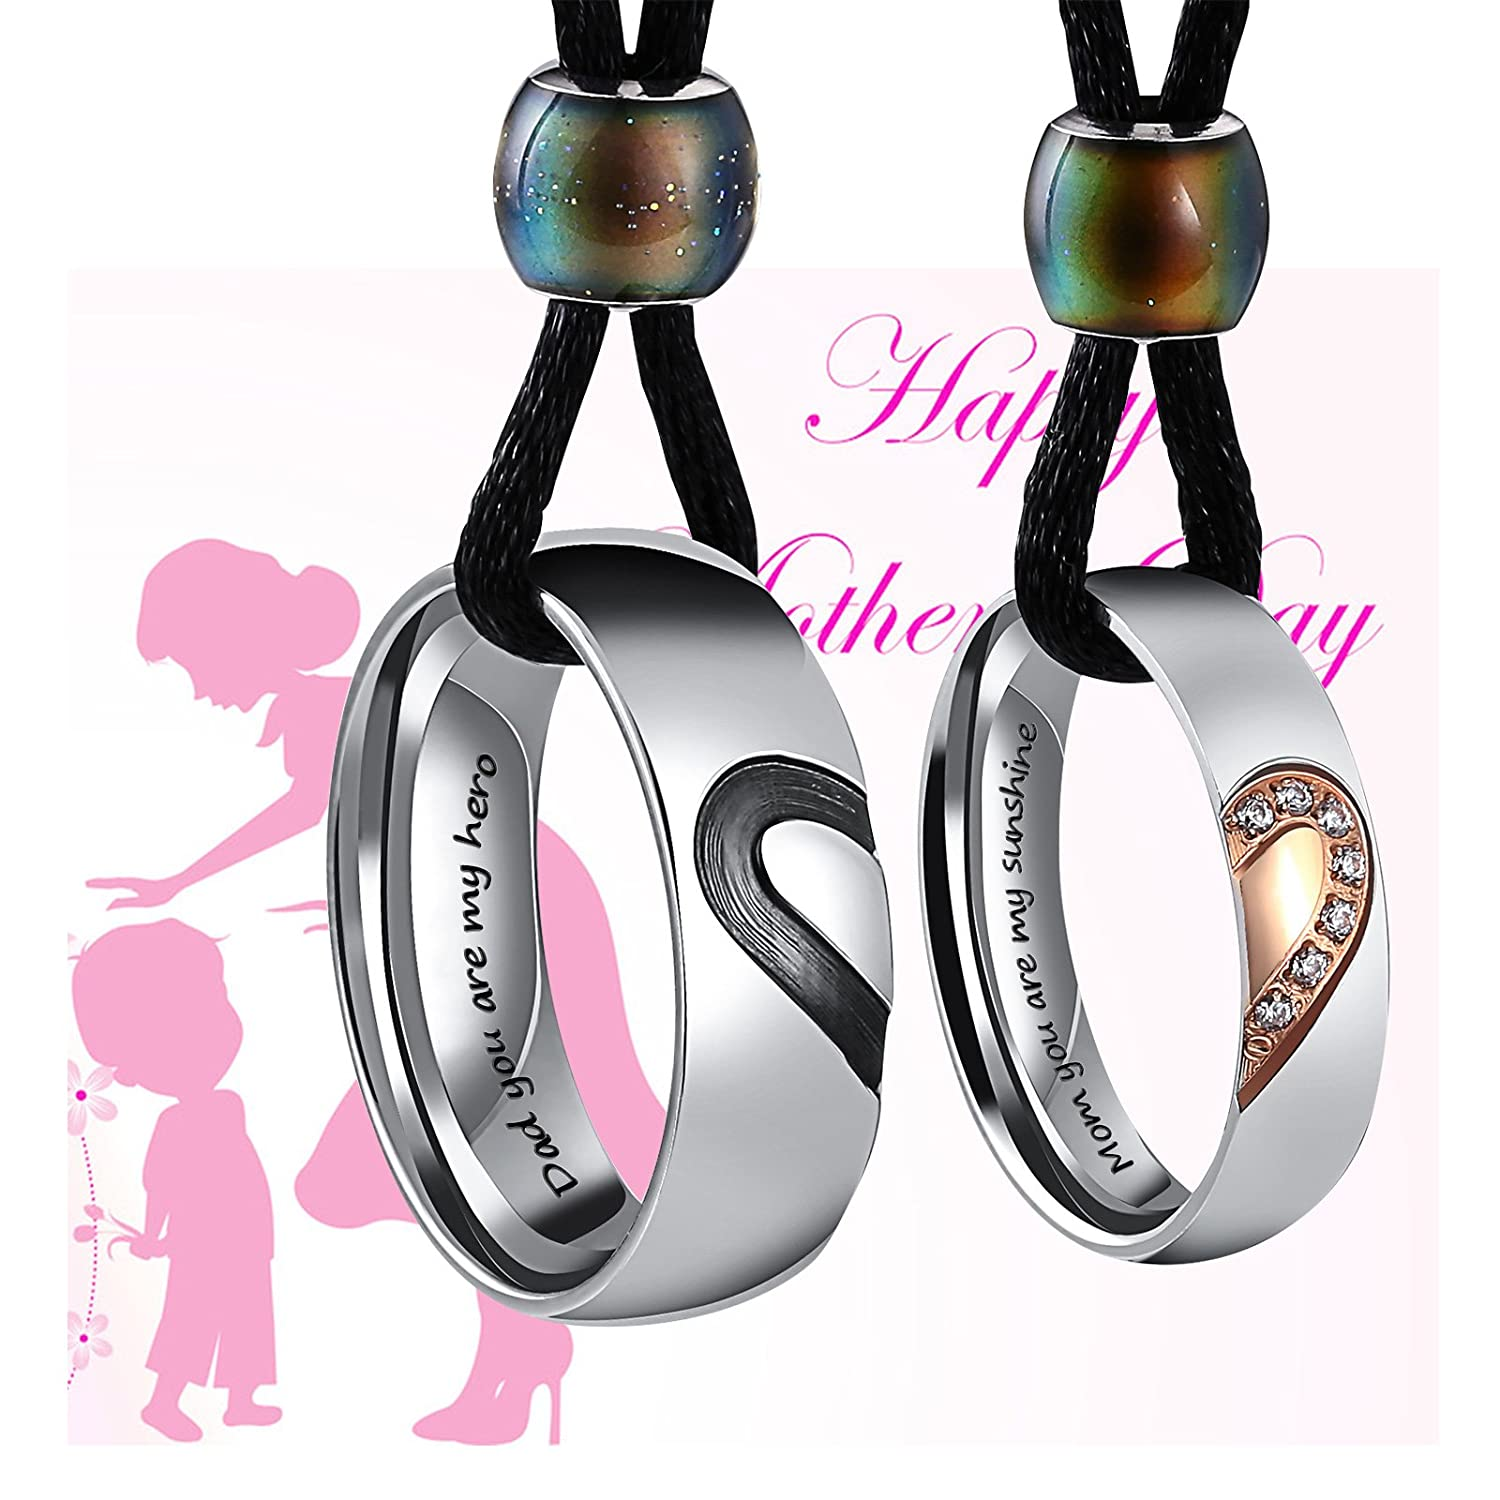 Aienid Couples Necklace for Him and Her Stainless Steel Heart Always Pendant for Chains CHXN17N-XY-004